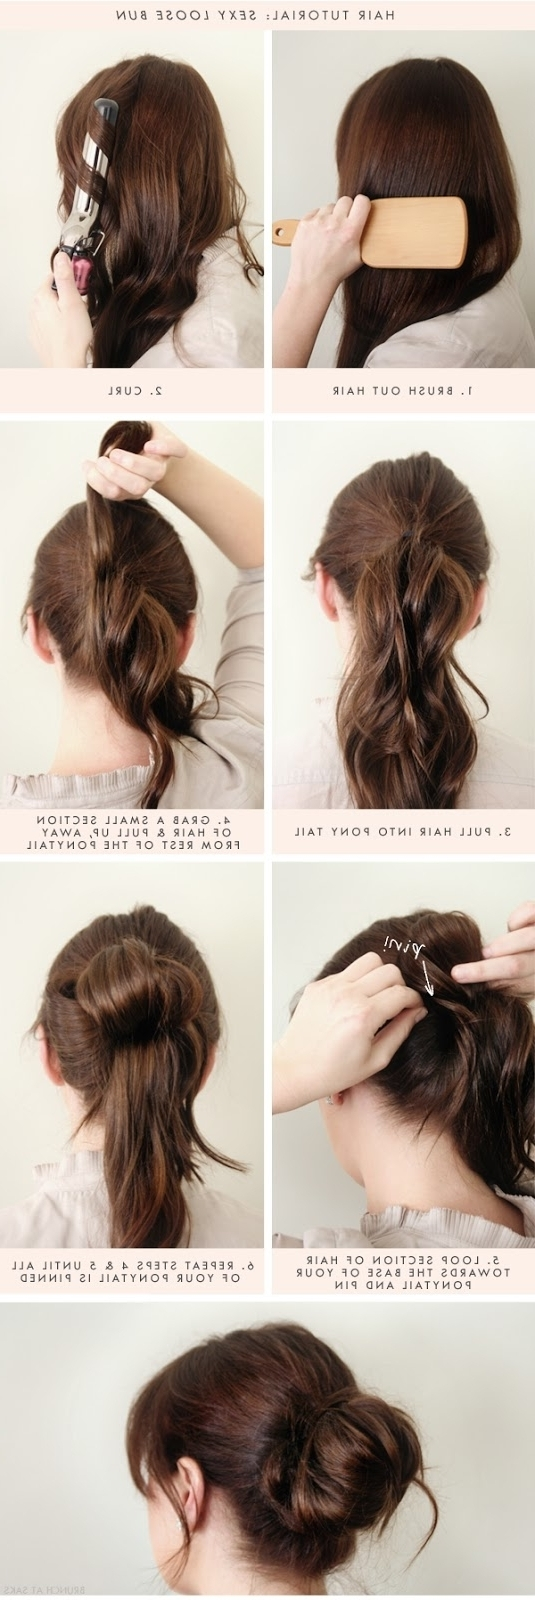 Easy Casual Updo Hairstyles For Long Hair – Women Medium Haircut Regarding Easy Casual Updos For Long Hair (View 7 of 15)